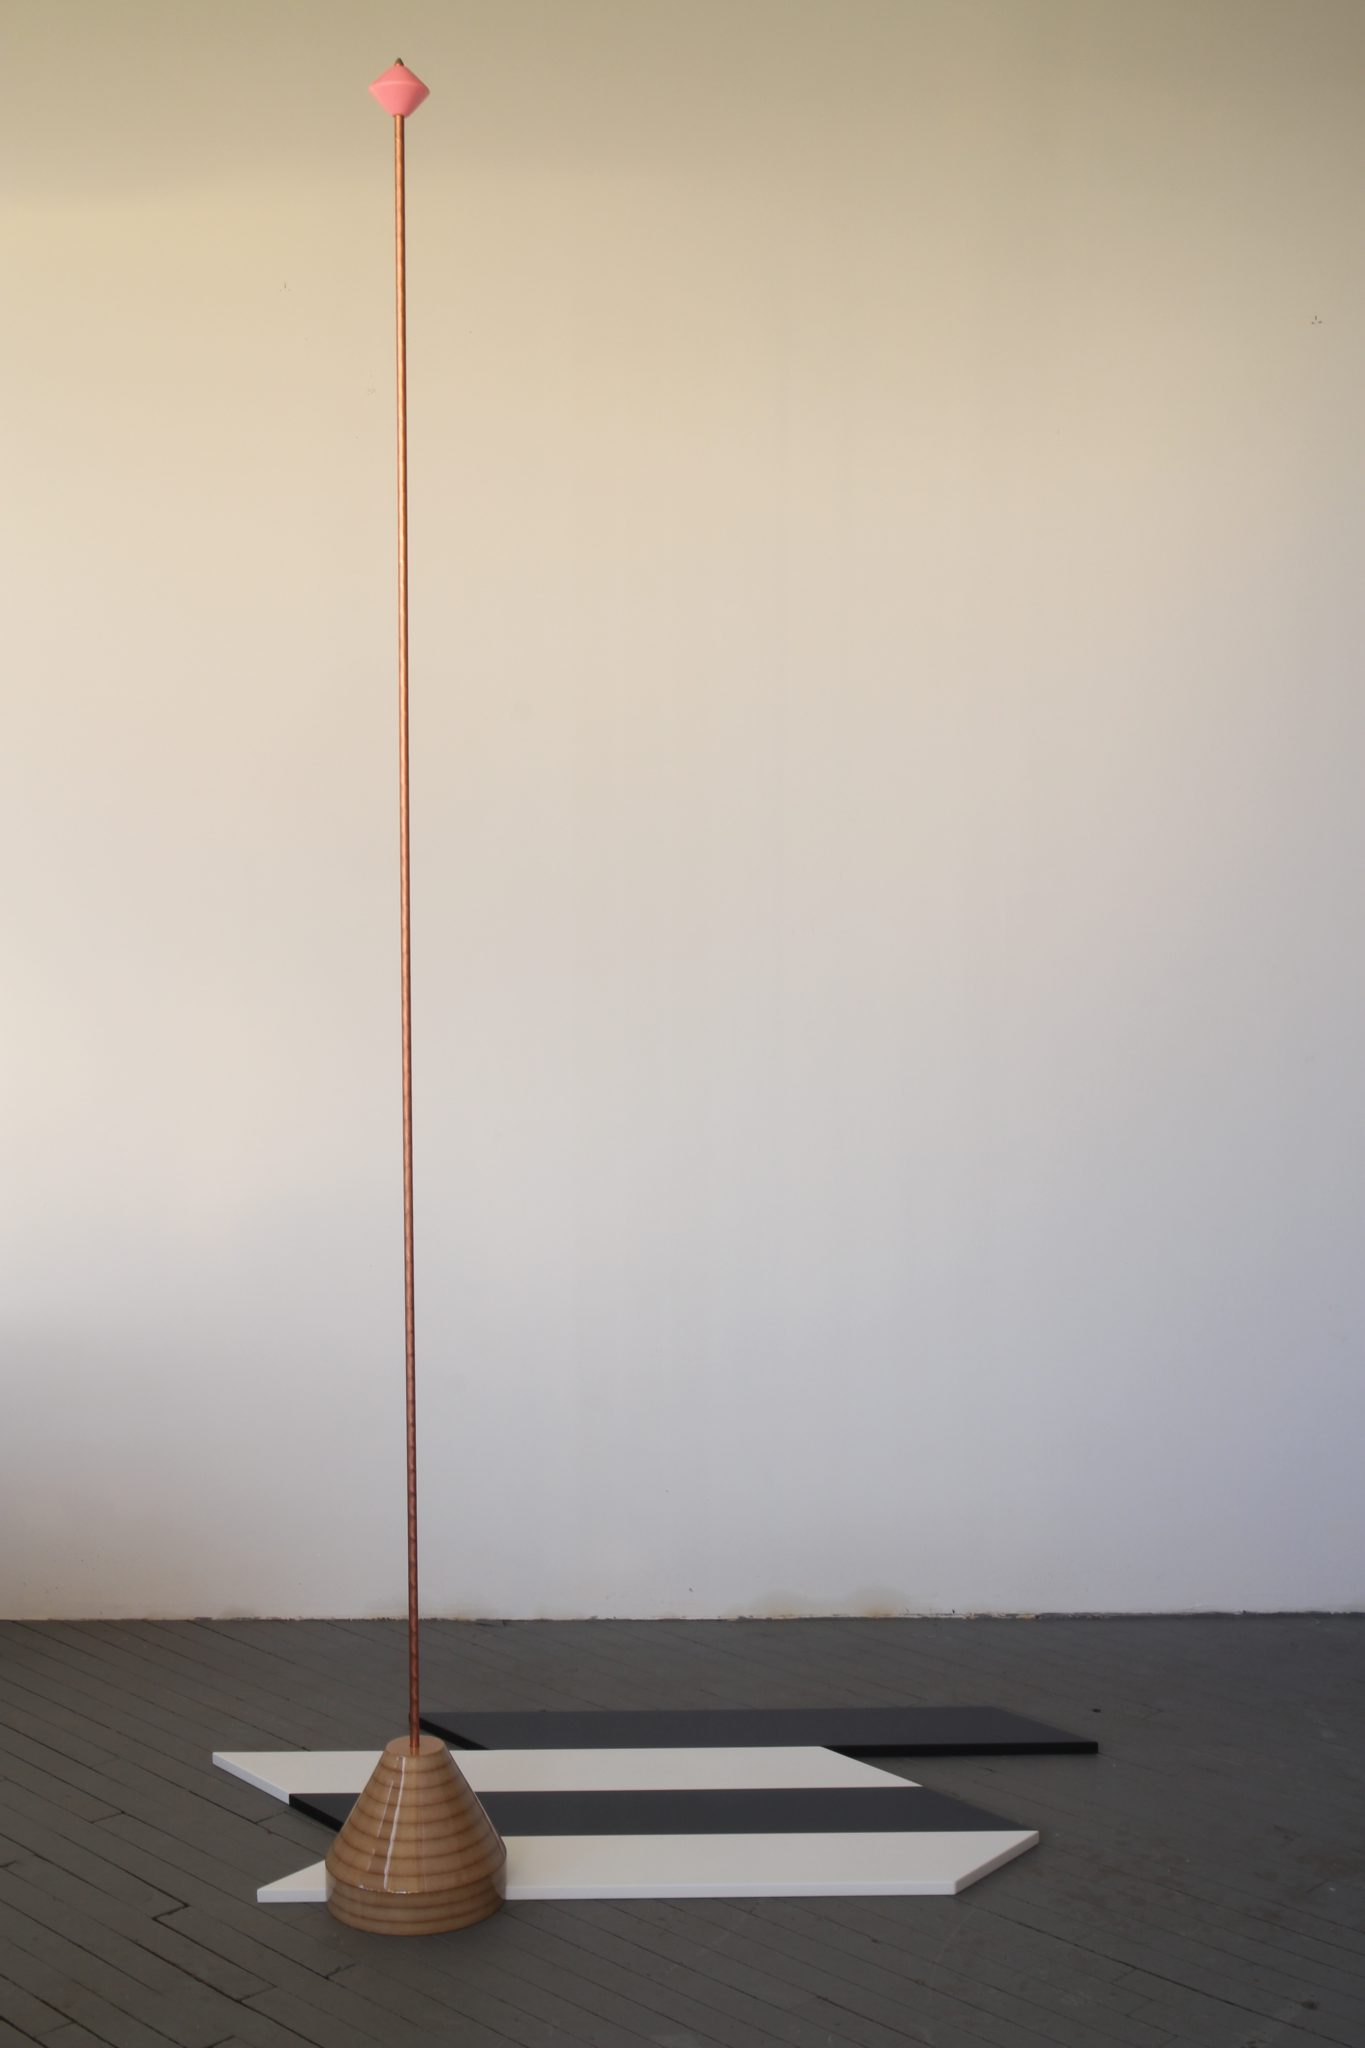 Reuven Israel, Formula 2, 2016, Copper coated steel rod and painted MDF, 244 x 140 x 96 cm